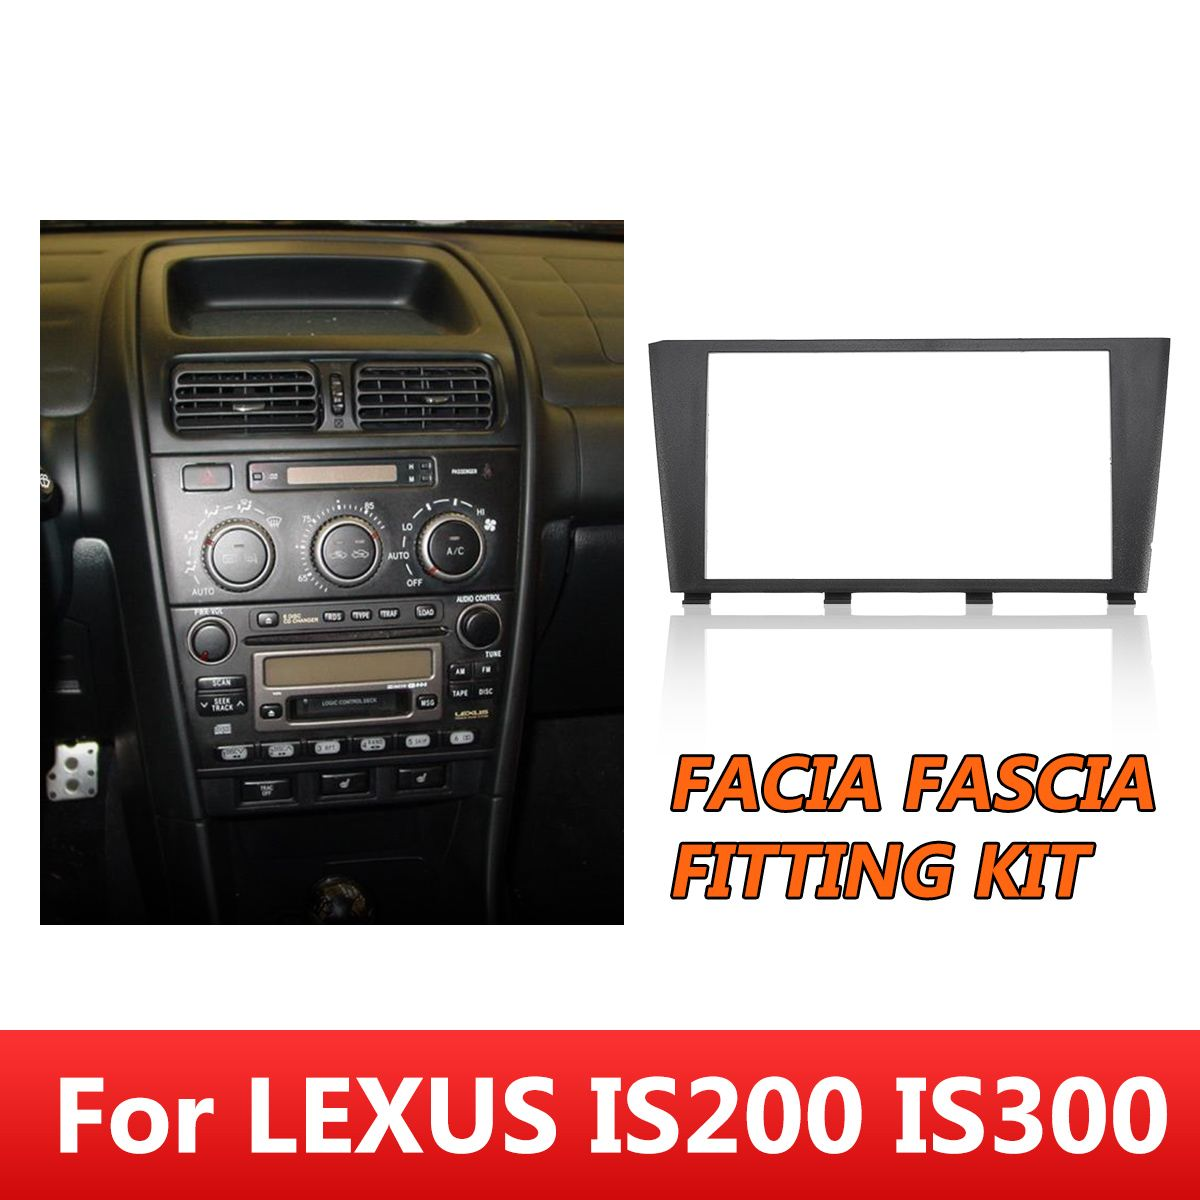 CD Radio Stereo Facia Fascia Fitting Kit Surround ISO Lead For Toyota <font><b>Altezza</b></font> Frame Console For <font><b>LEXUS</b></font> IS200 <font><b>IS300</b></font> 1995-2006 image